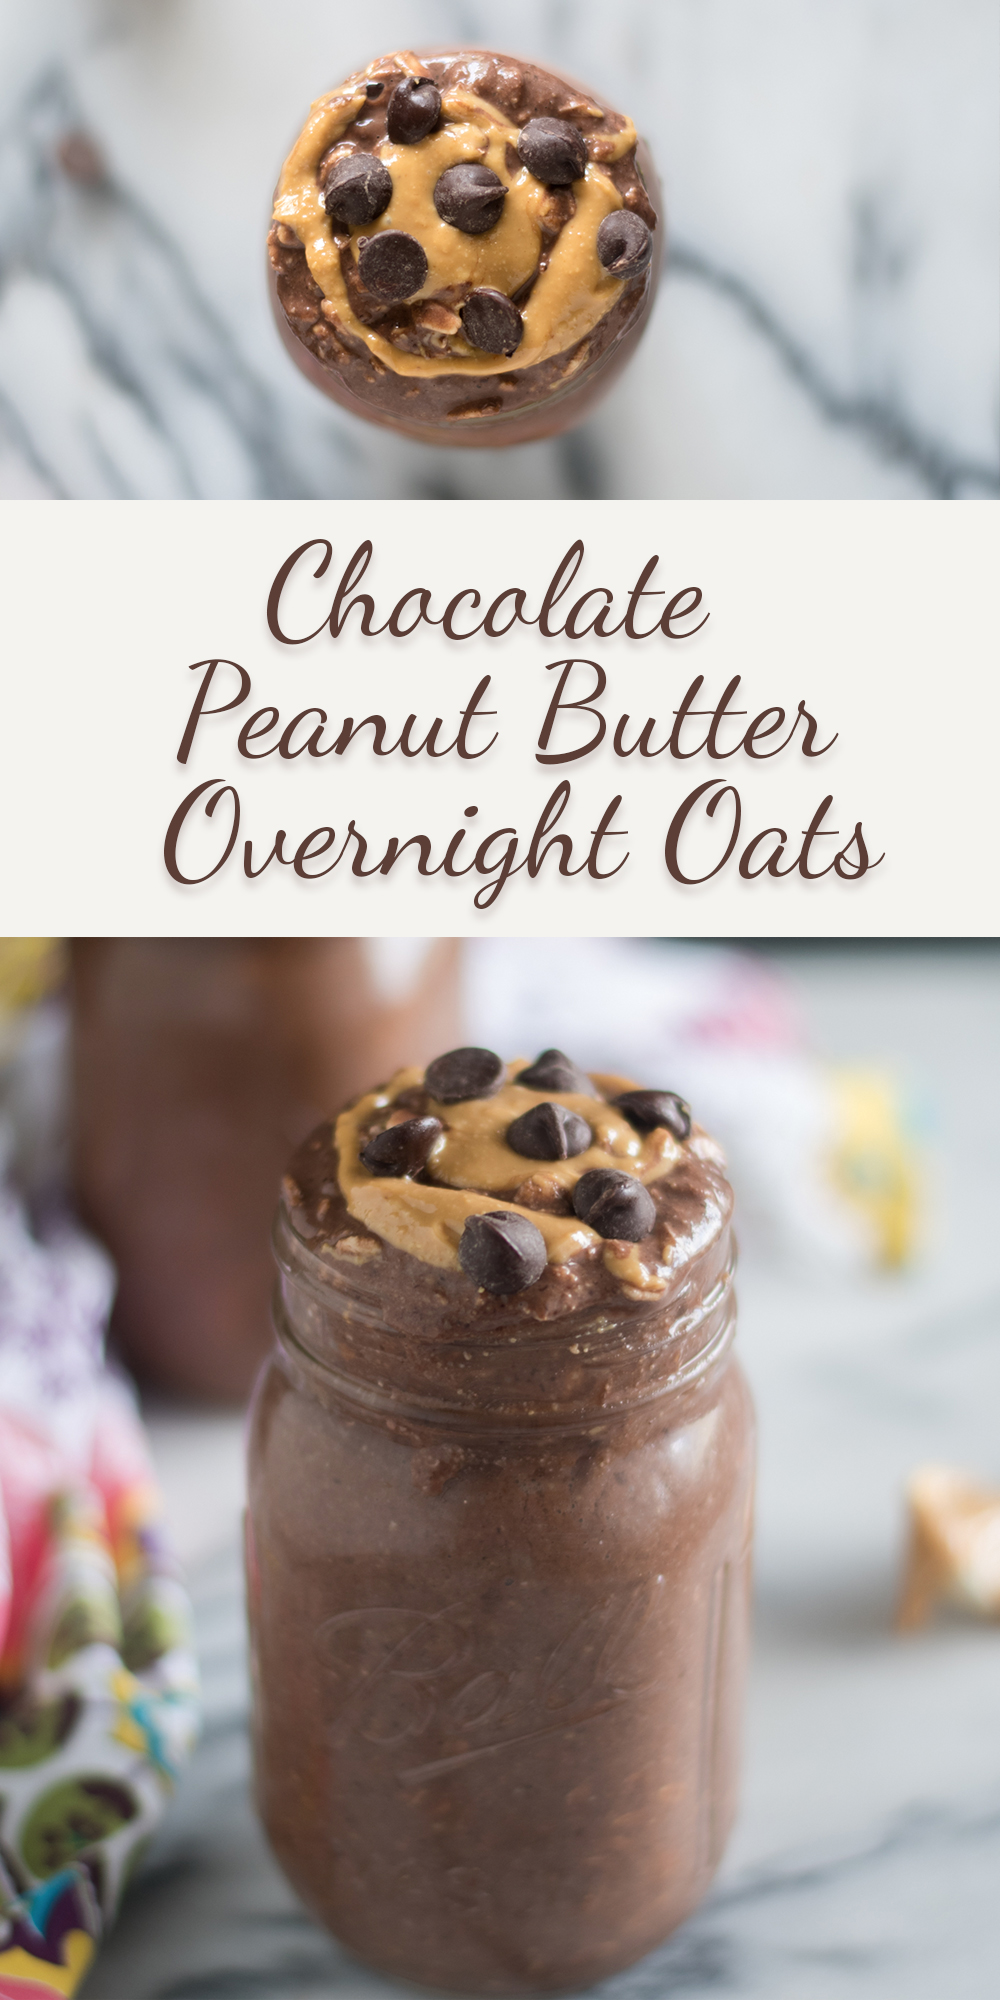 Prep these Chocolate Peanut Butter Overnight Oats the night before and have breakfast waiting for you in the morning! #vegan #recipes #breakfast